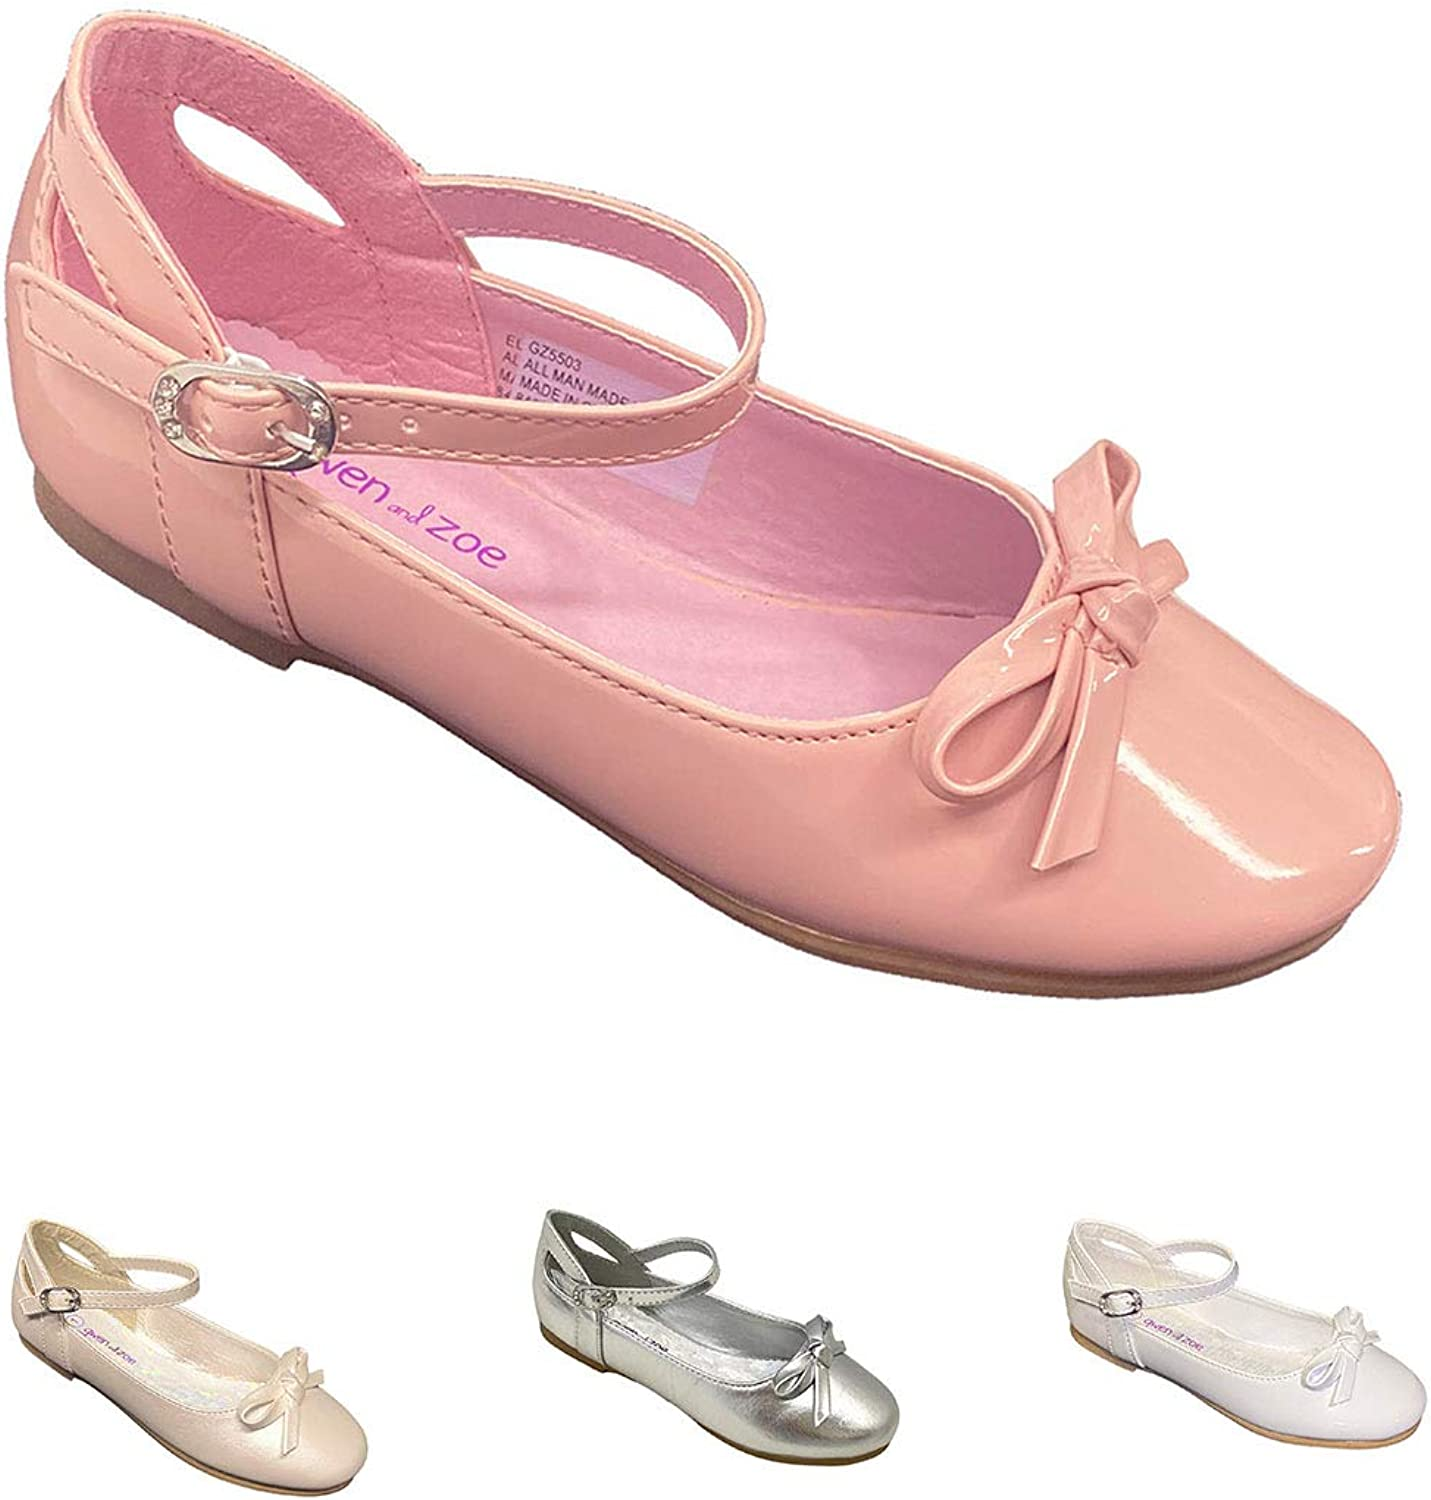 Gwen Zoe Popular products Girl Dress Flats Christmas Shoes Weddings for Our shop most popular First